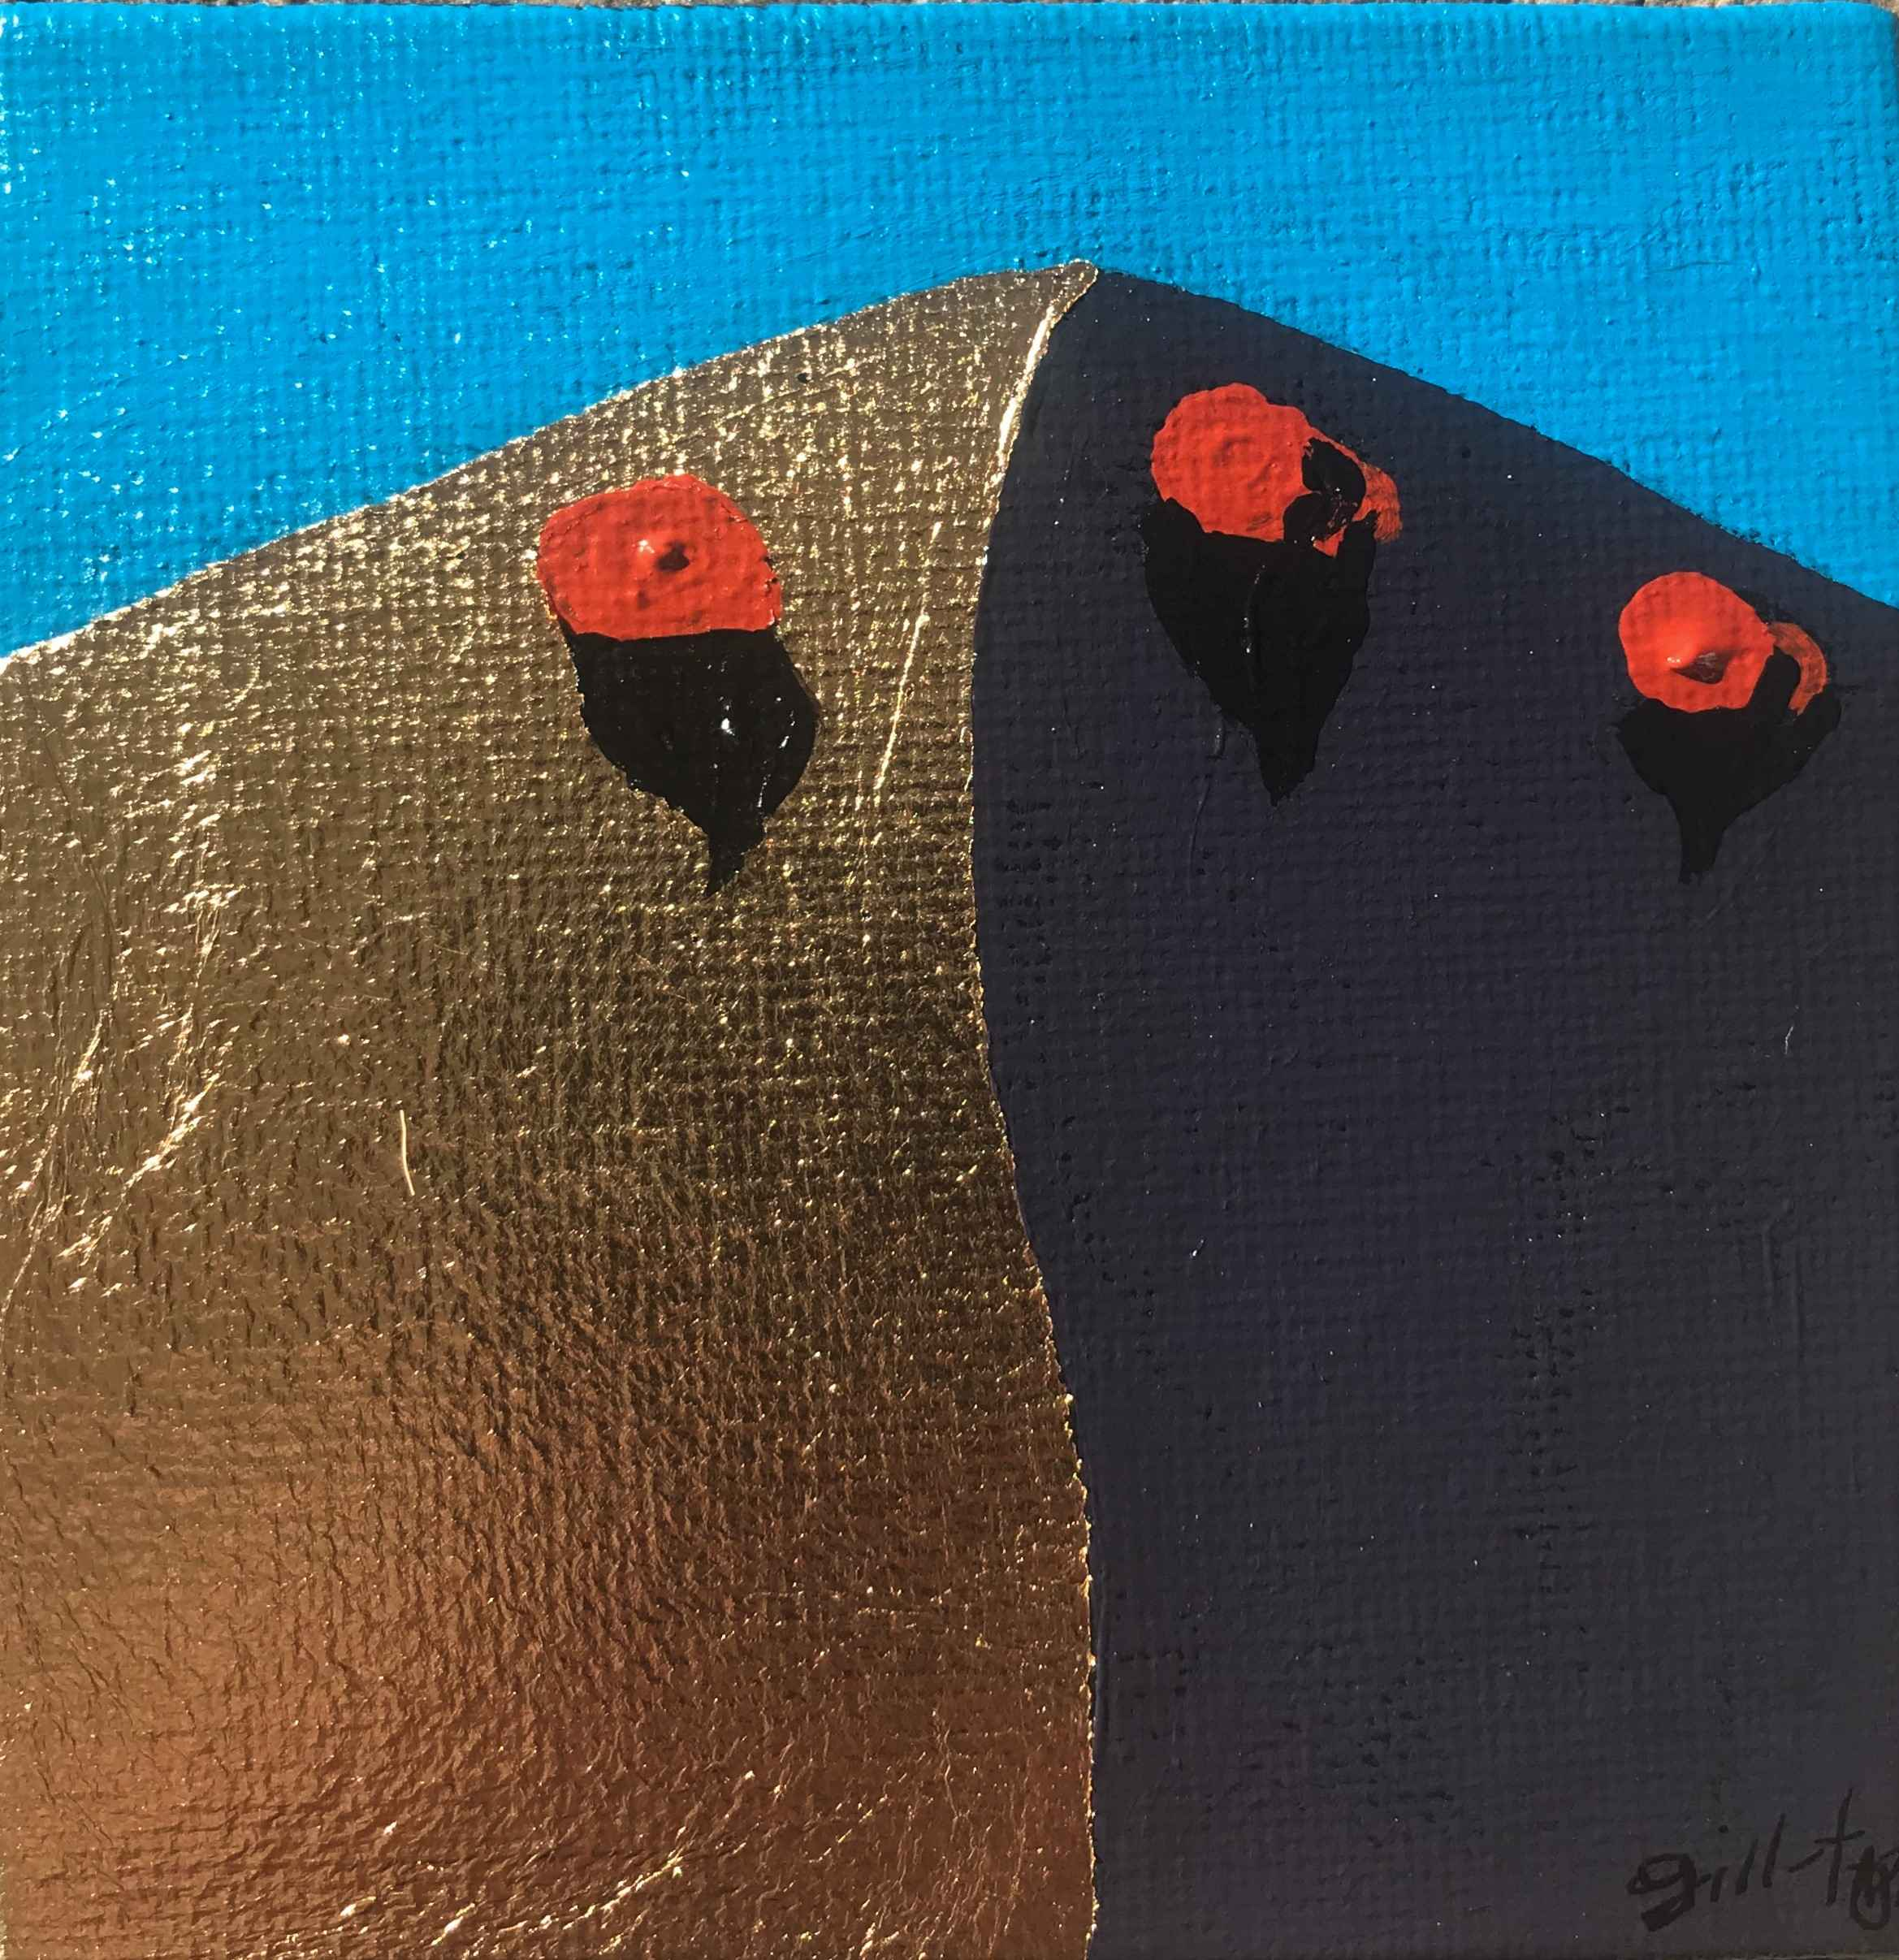 Sunday In Taos by  Alvin Gill-Tapia - Masterpiece Online